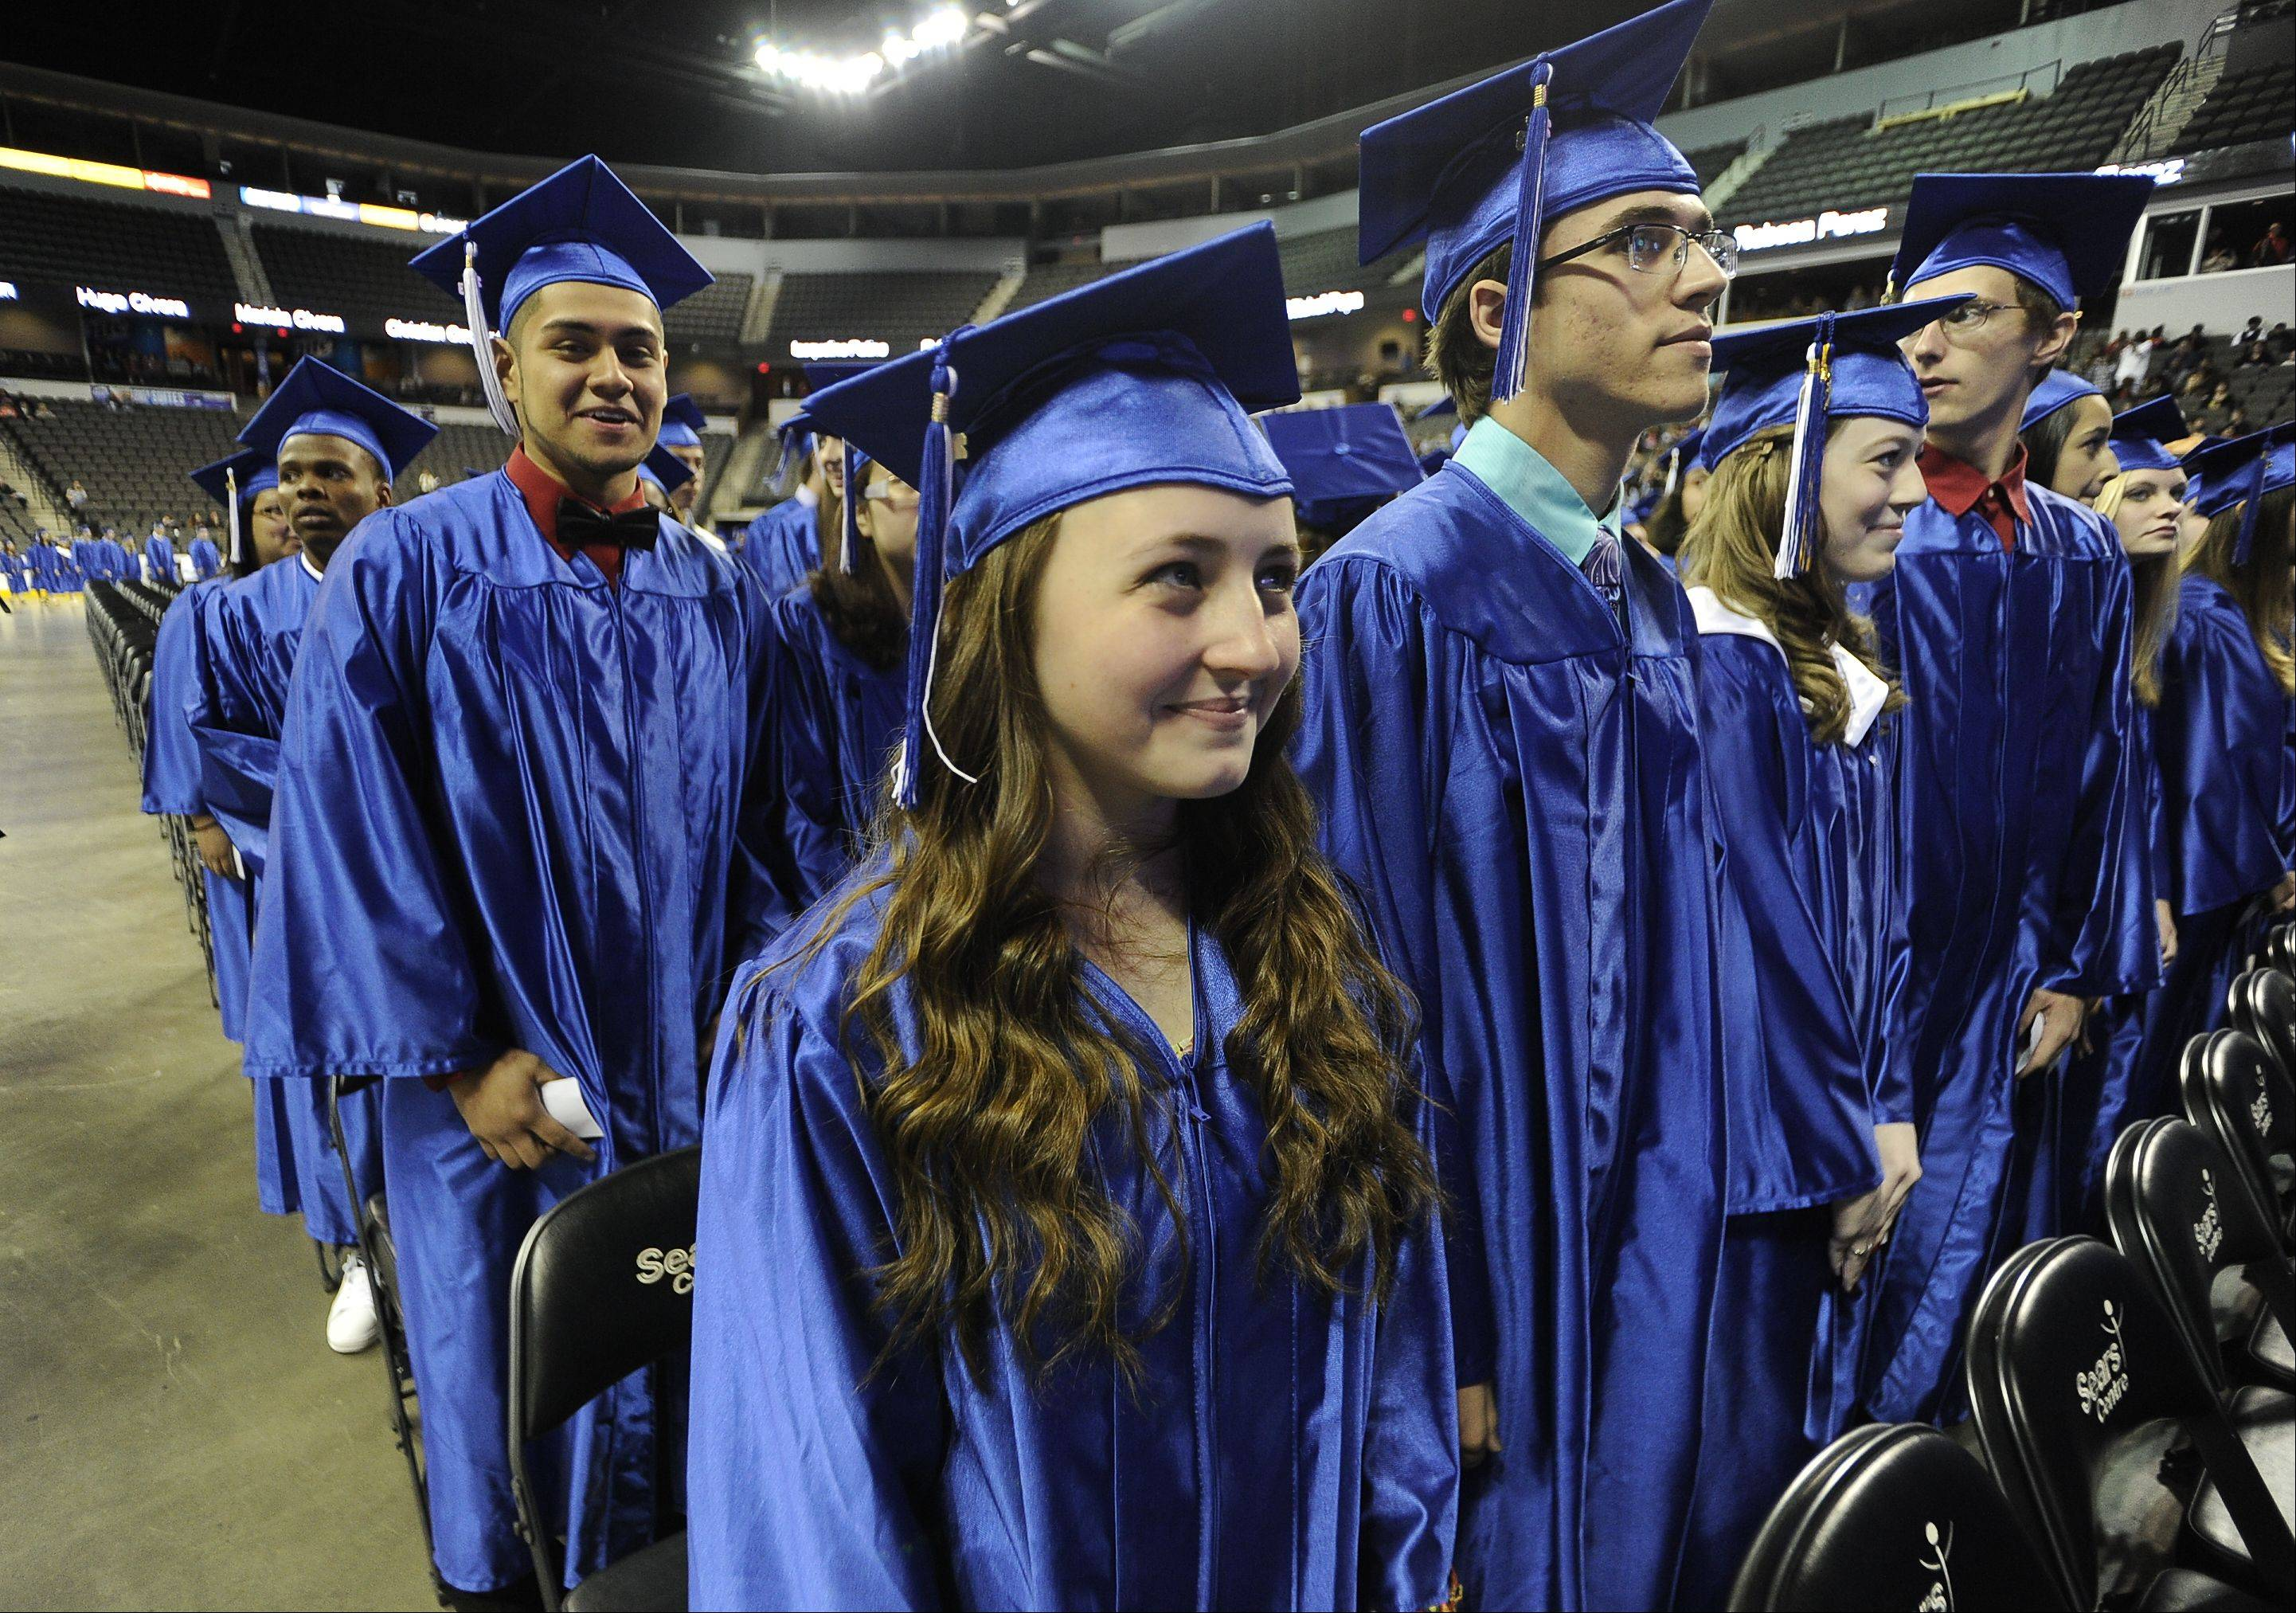 Images from the Larkin High School commencement ceremony Saturday, May 25, 2013 at the Sears Centre in Hoffman Estates.